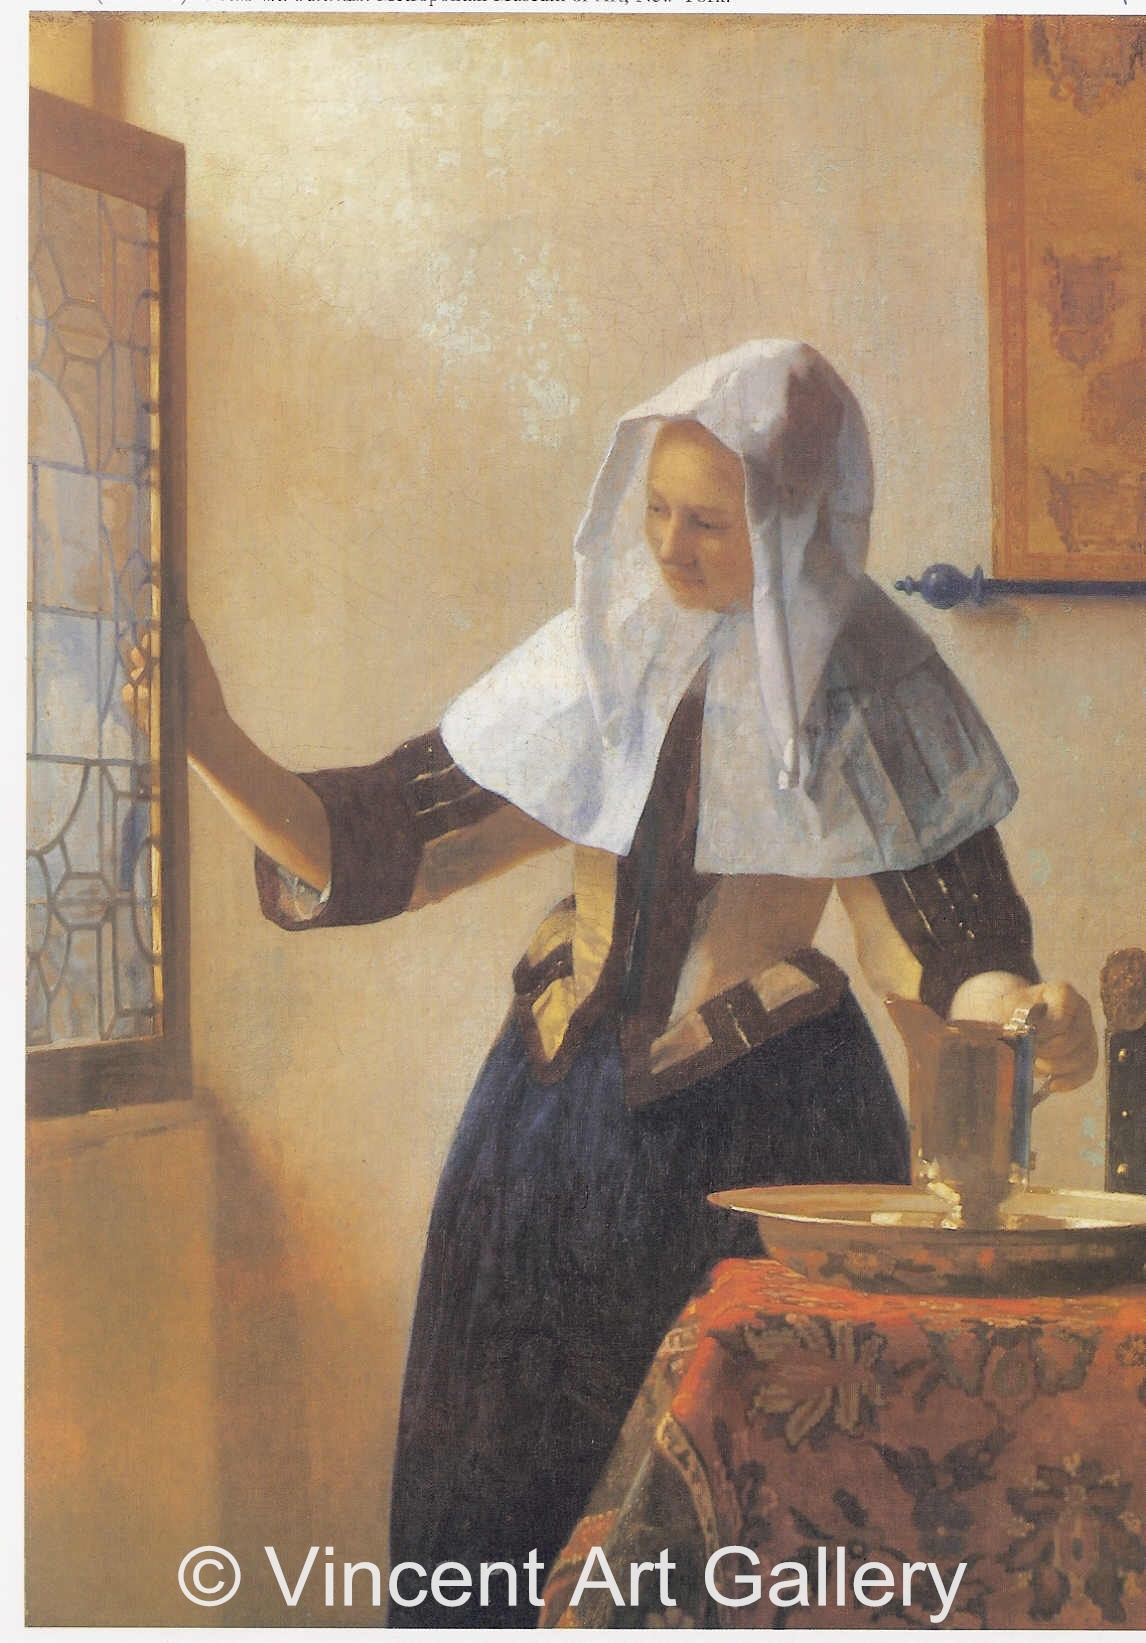 A113, VERMEER, Woman with a Water Jug, Left Side